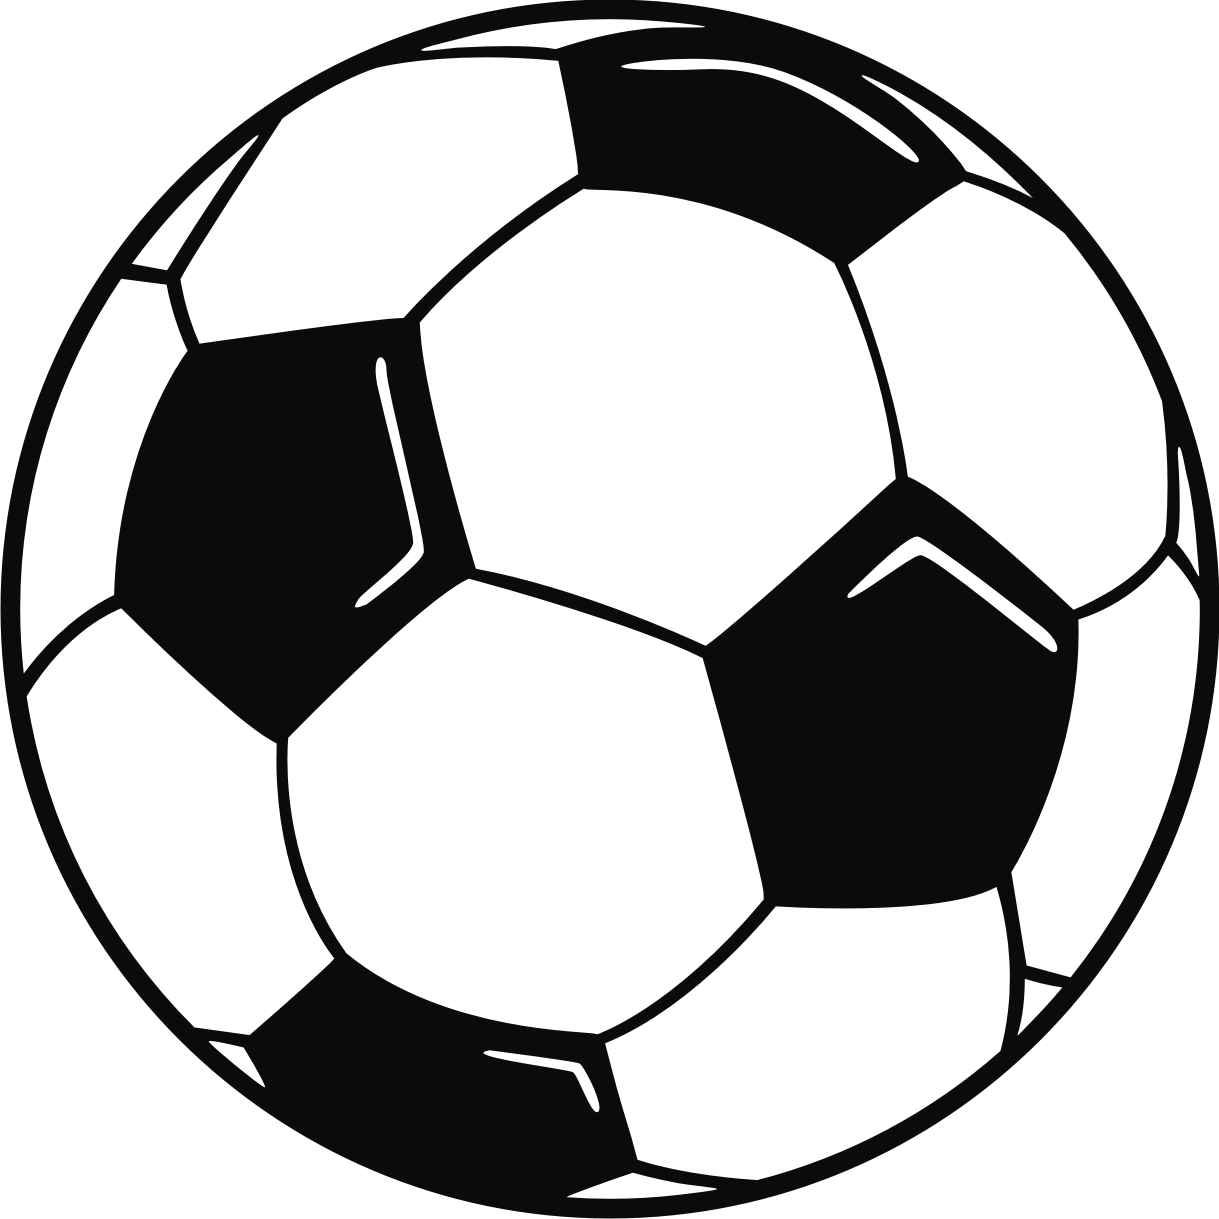 1219x1219 Soccer Ball Clip Art Free Large Images 2